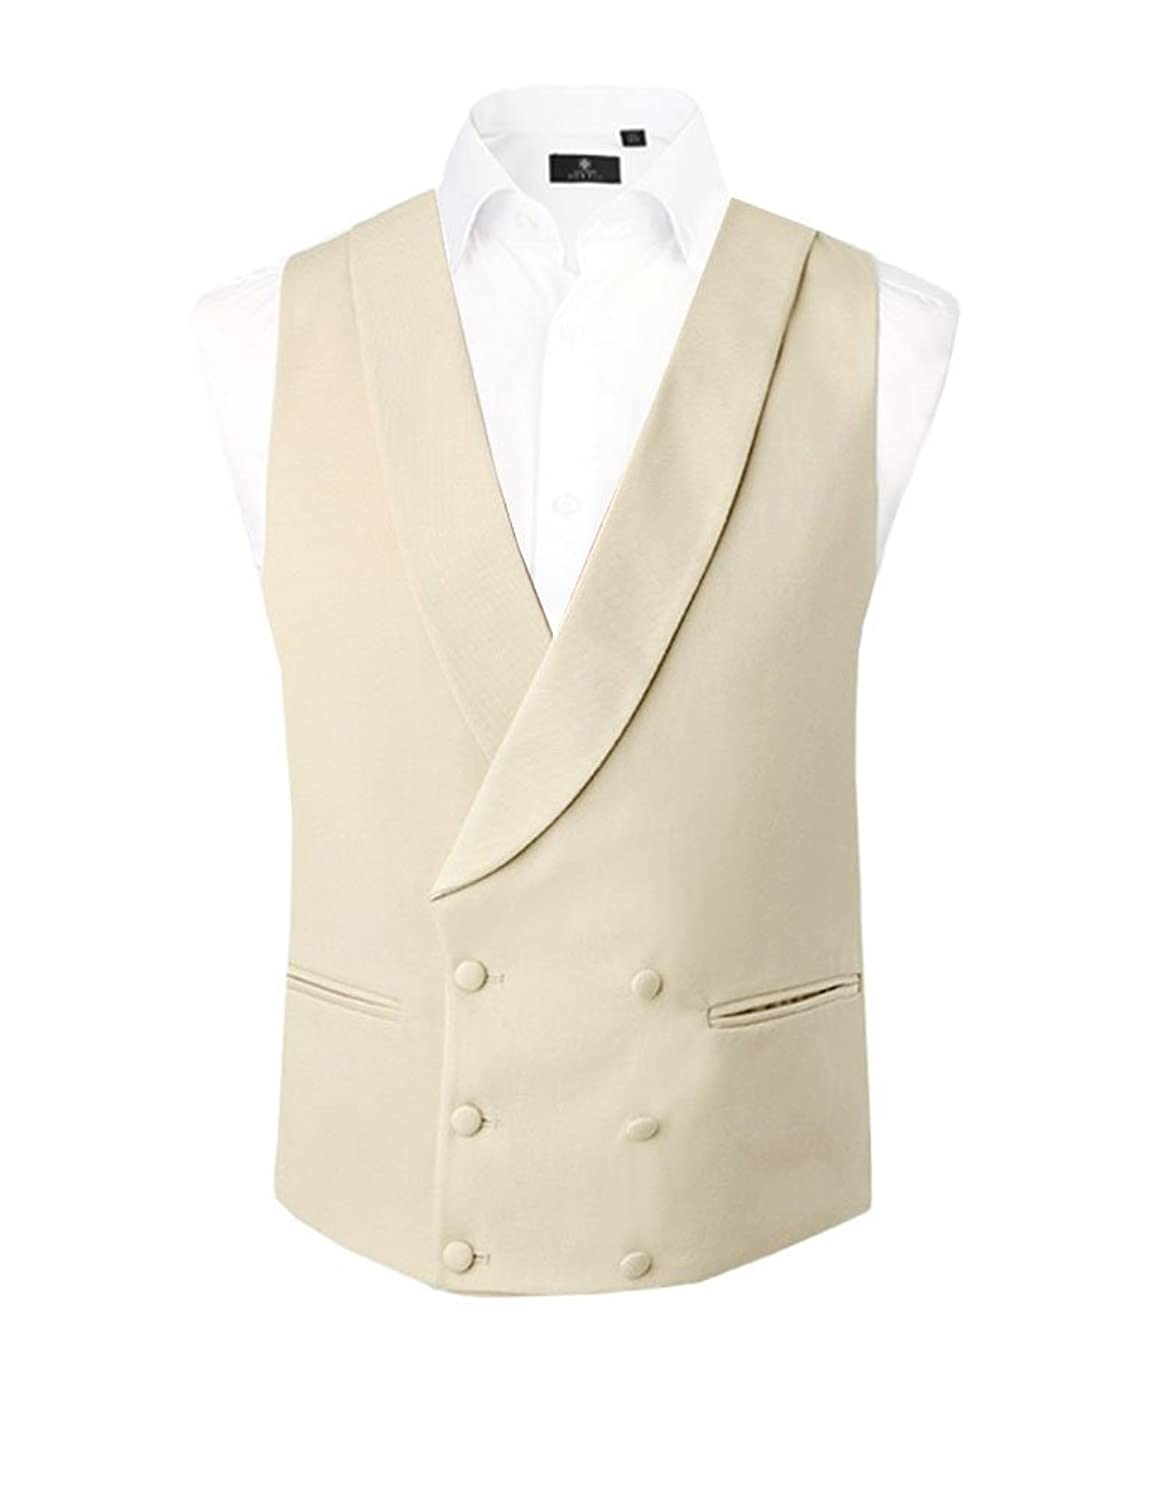 Mr. Selfridge Costumes Season 3: 1919 Clothing Mens Gold/Buff Double Breasted Shawl Lapel Morning Suit Waistcoat £39.99 AT vintagedancer.com